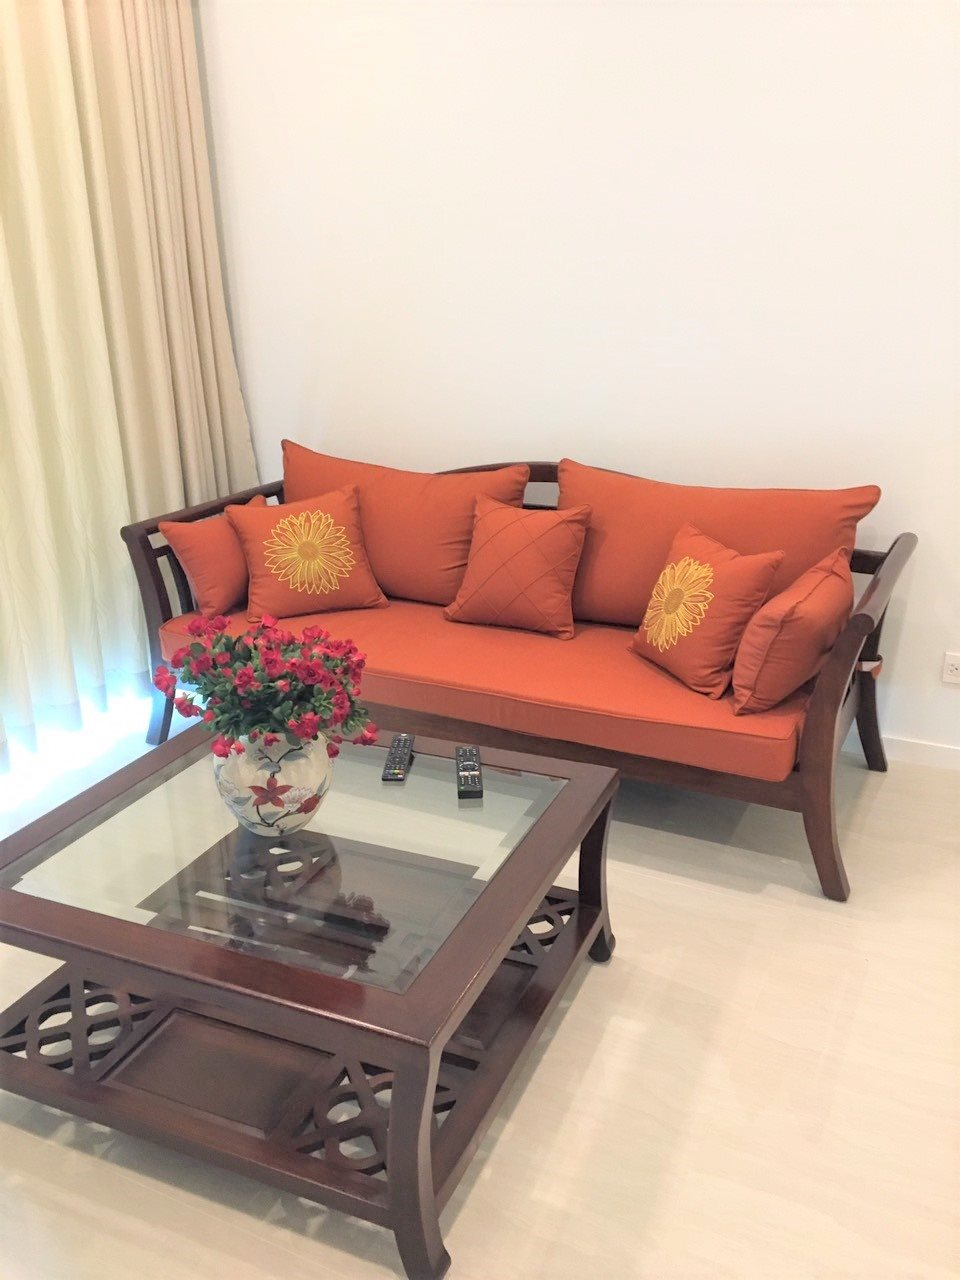 Apartment for rent D228005 (12)